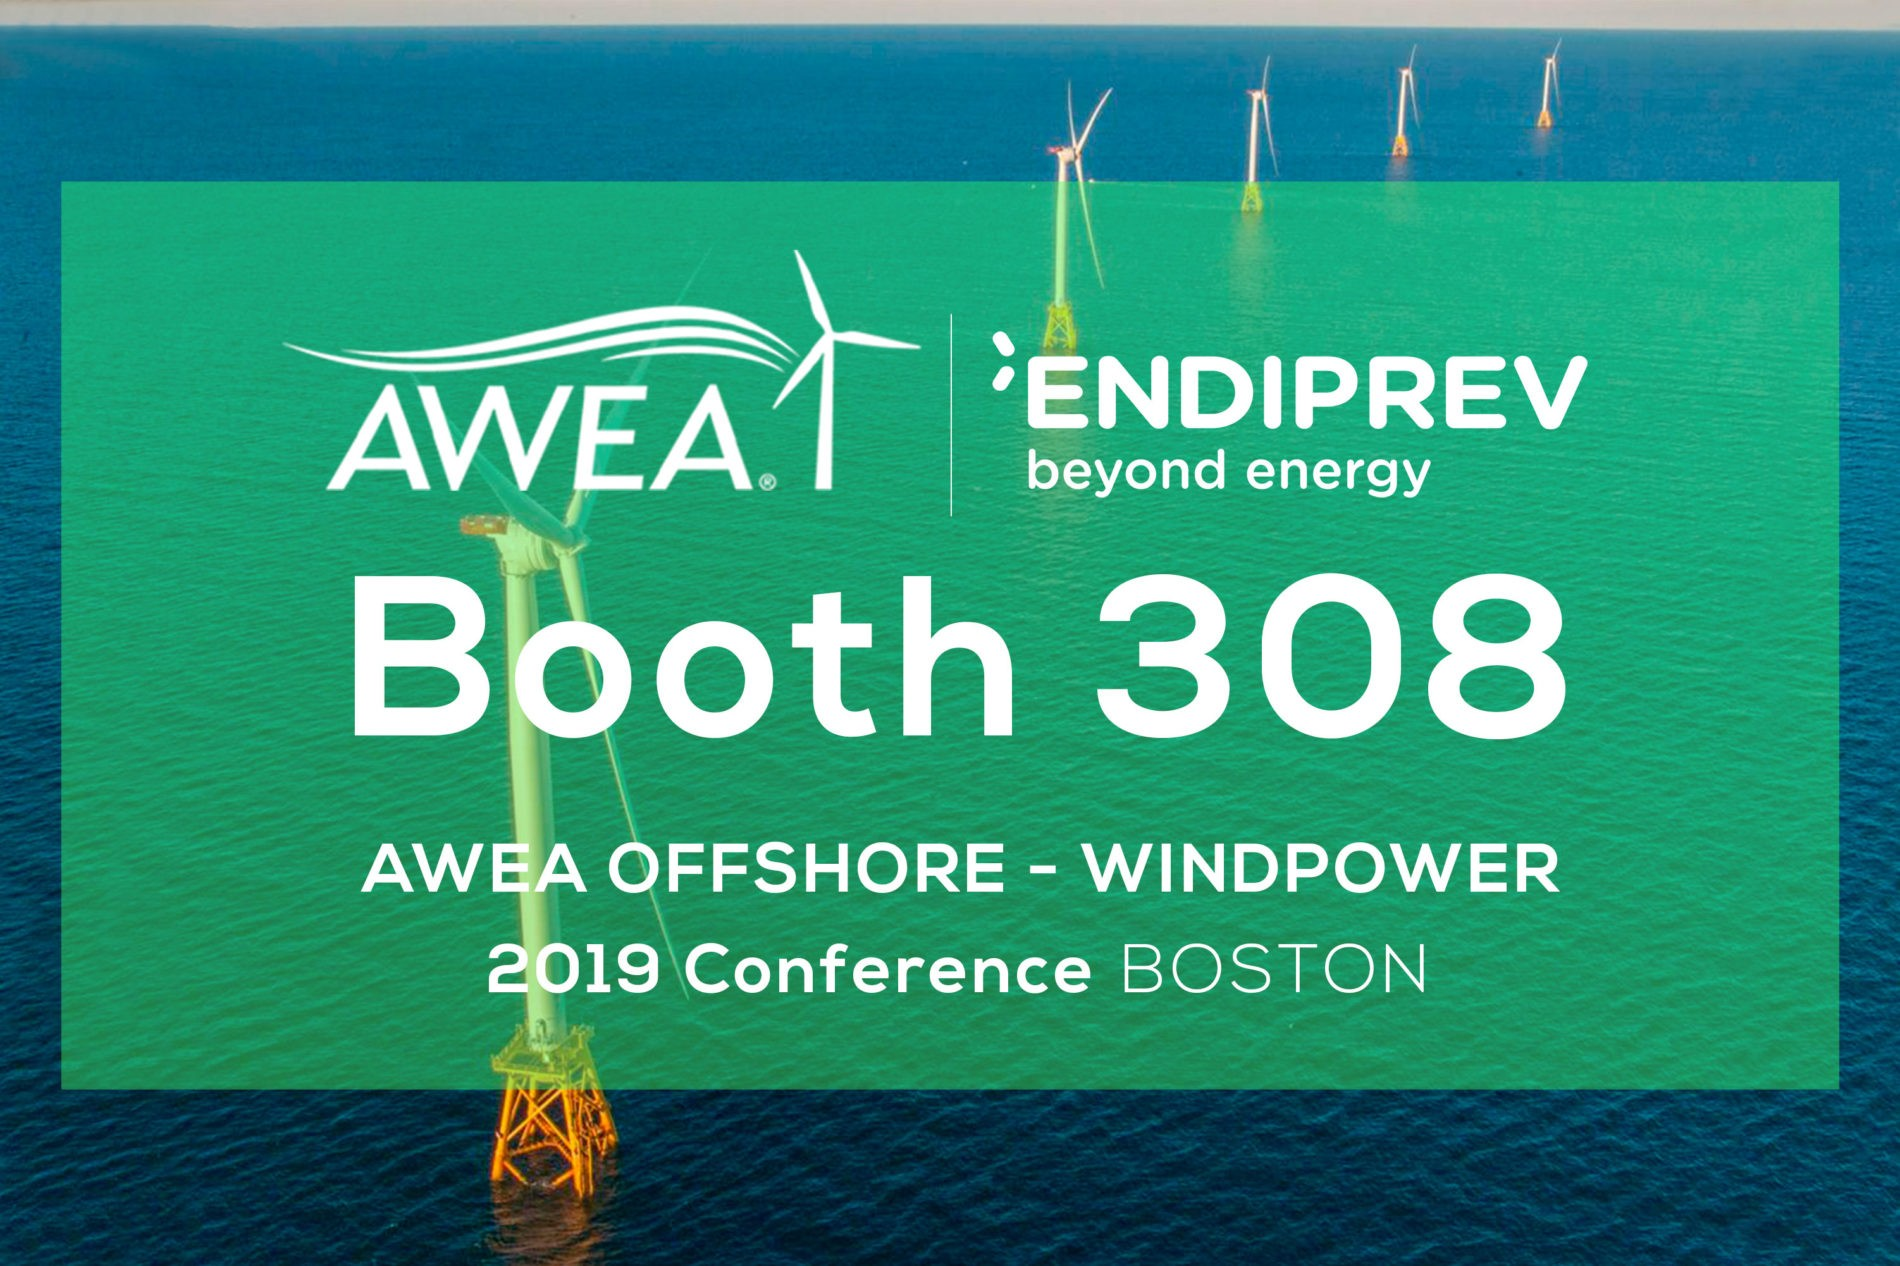 Endiprev at AWEA Offshore WINDPOWER 2019 Conference in Boston